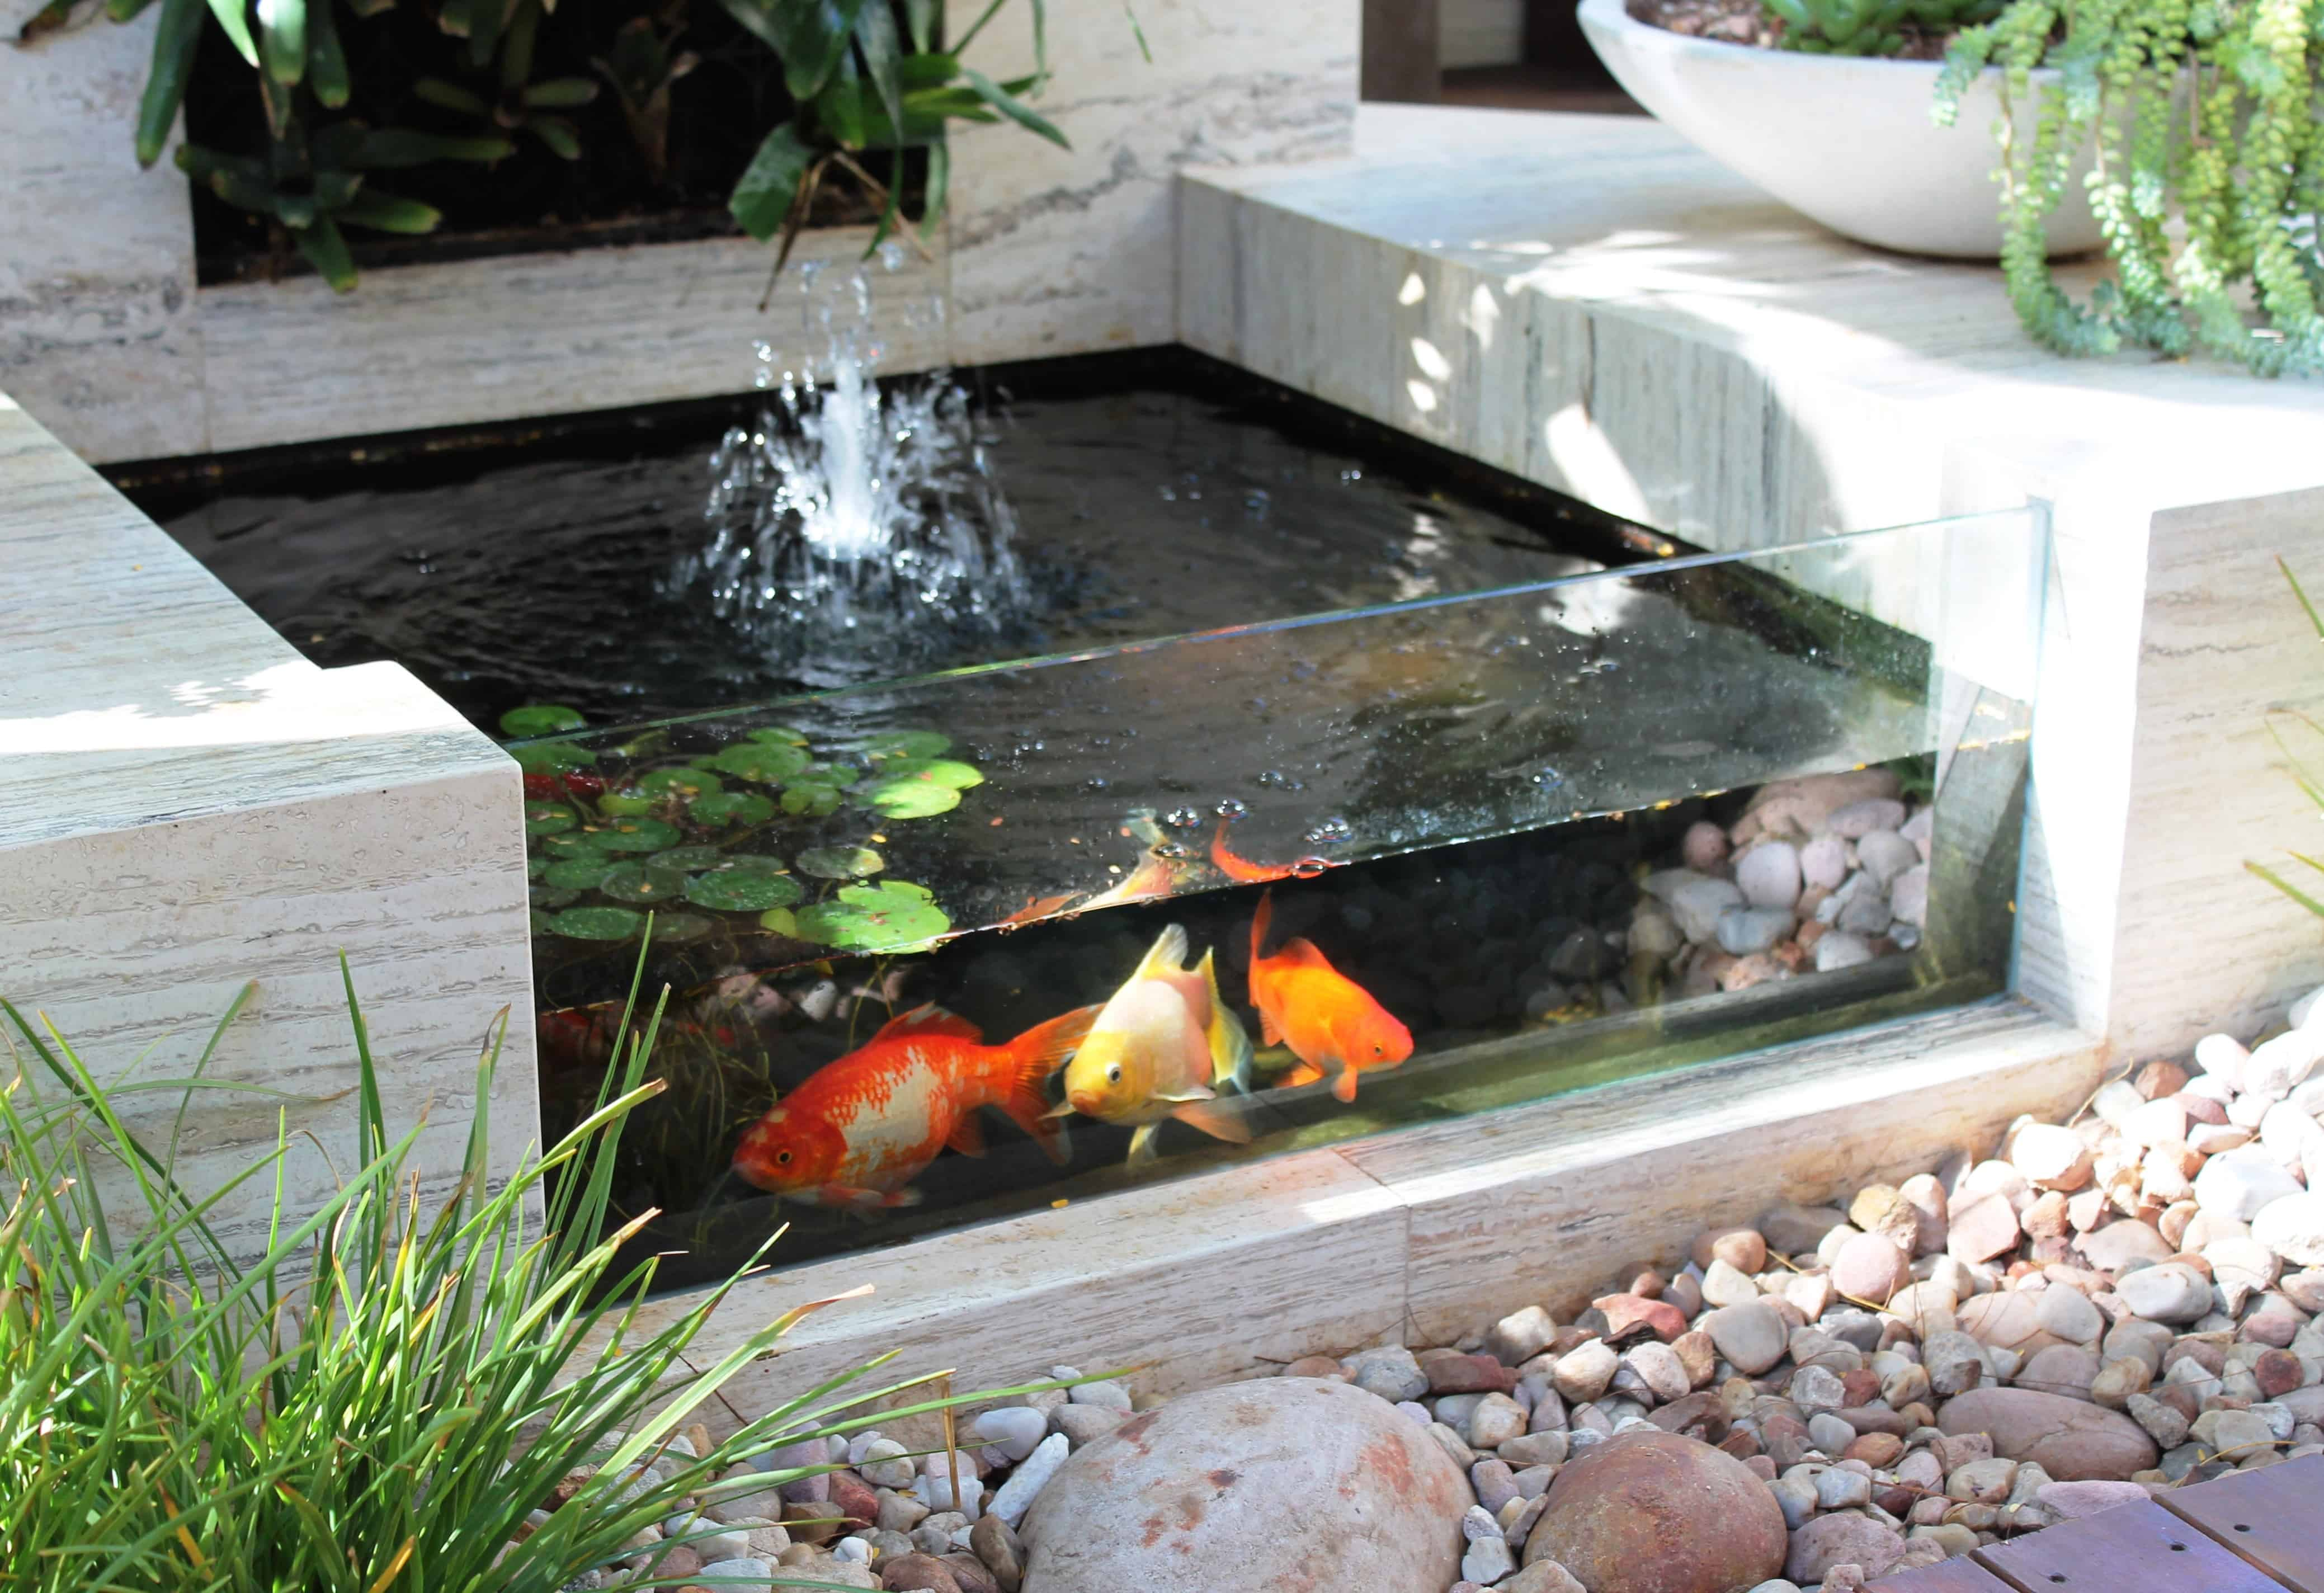 Inspiring Water Garden Ideas Homes Koi Pond This Small Solar Design Gives Everyone A Chance To Be A Pond Sublime Koi Pond Designs Winter Small Koi Pond houzz 01 Indoor Koi Pond